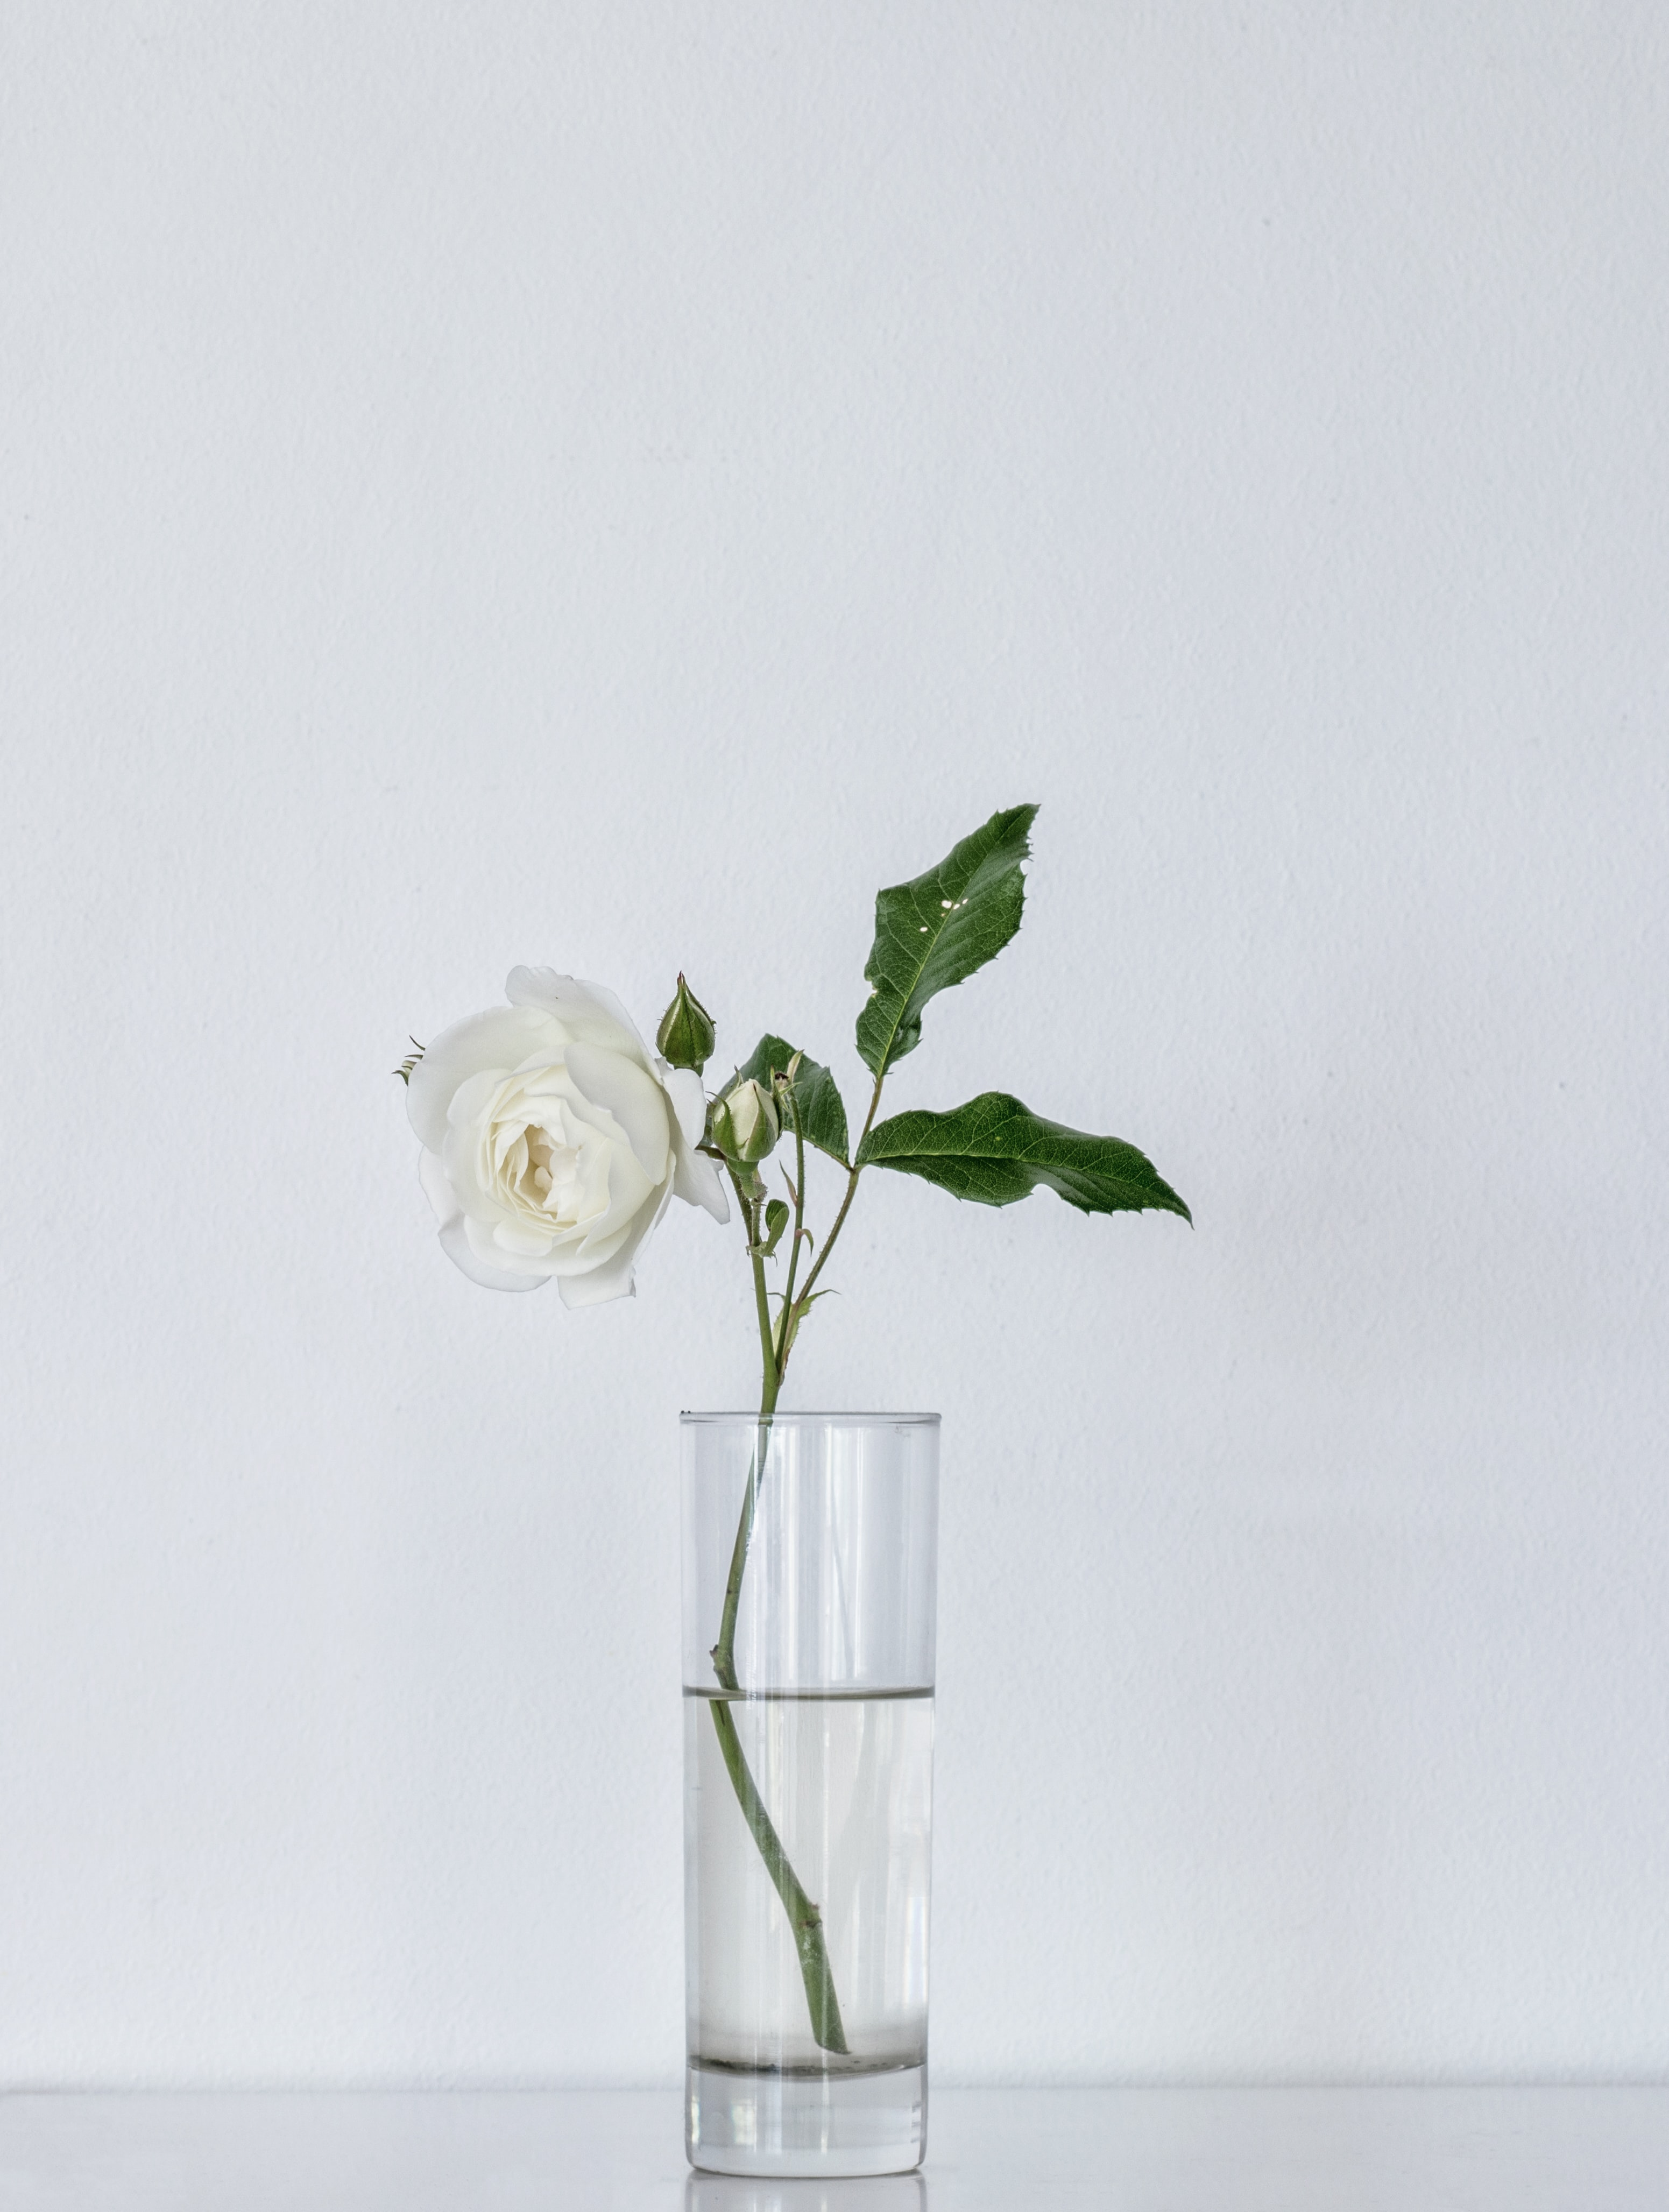 white rose on glass vase